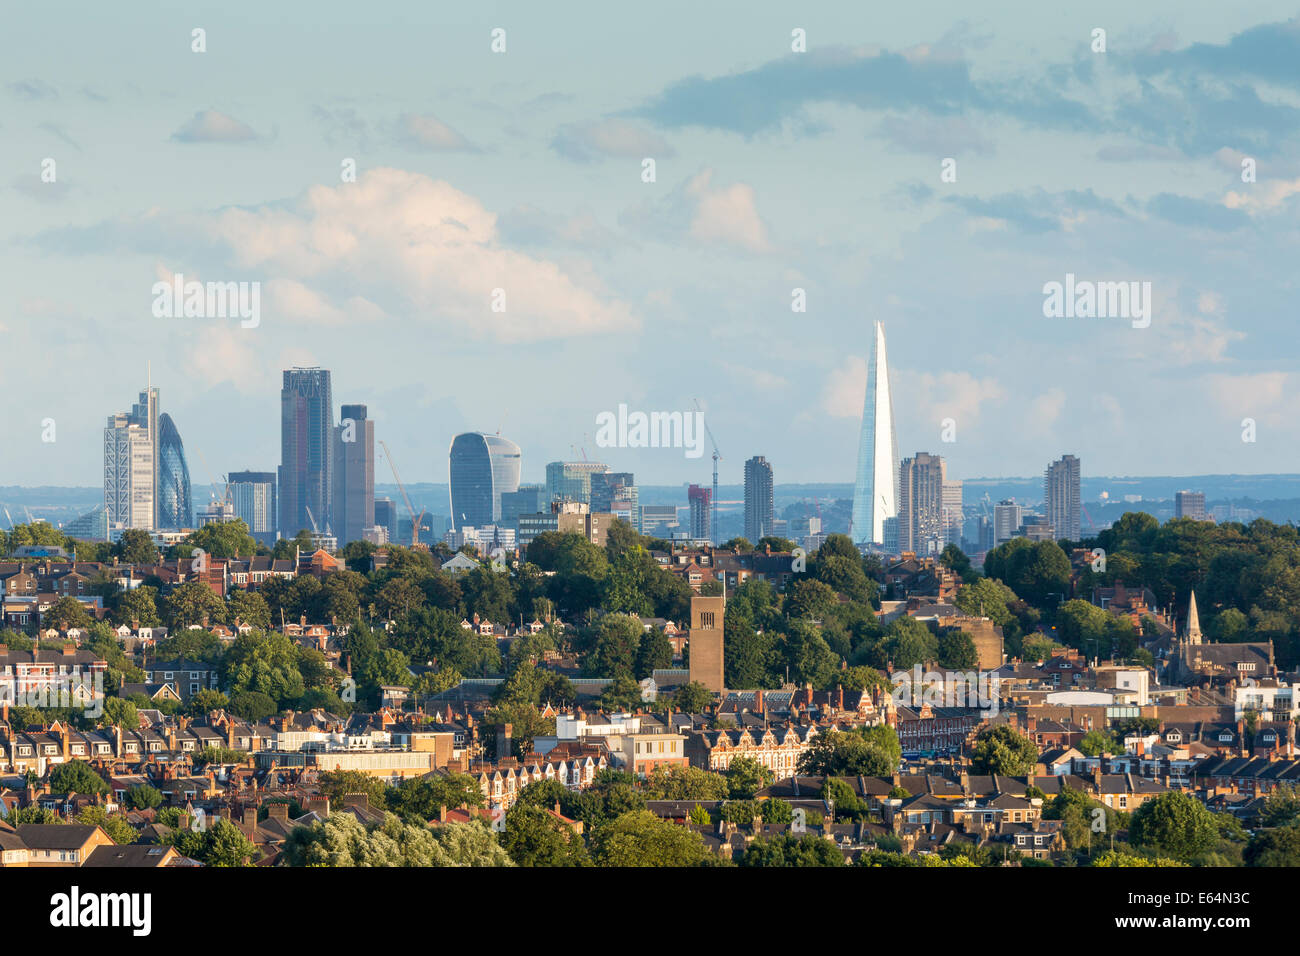 London City Skyline at Evening, from Alexandra Palace. England, UK - Stock Image